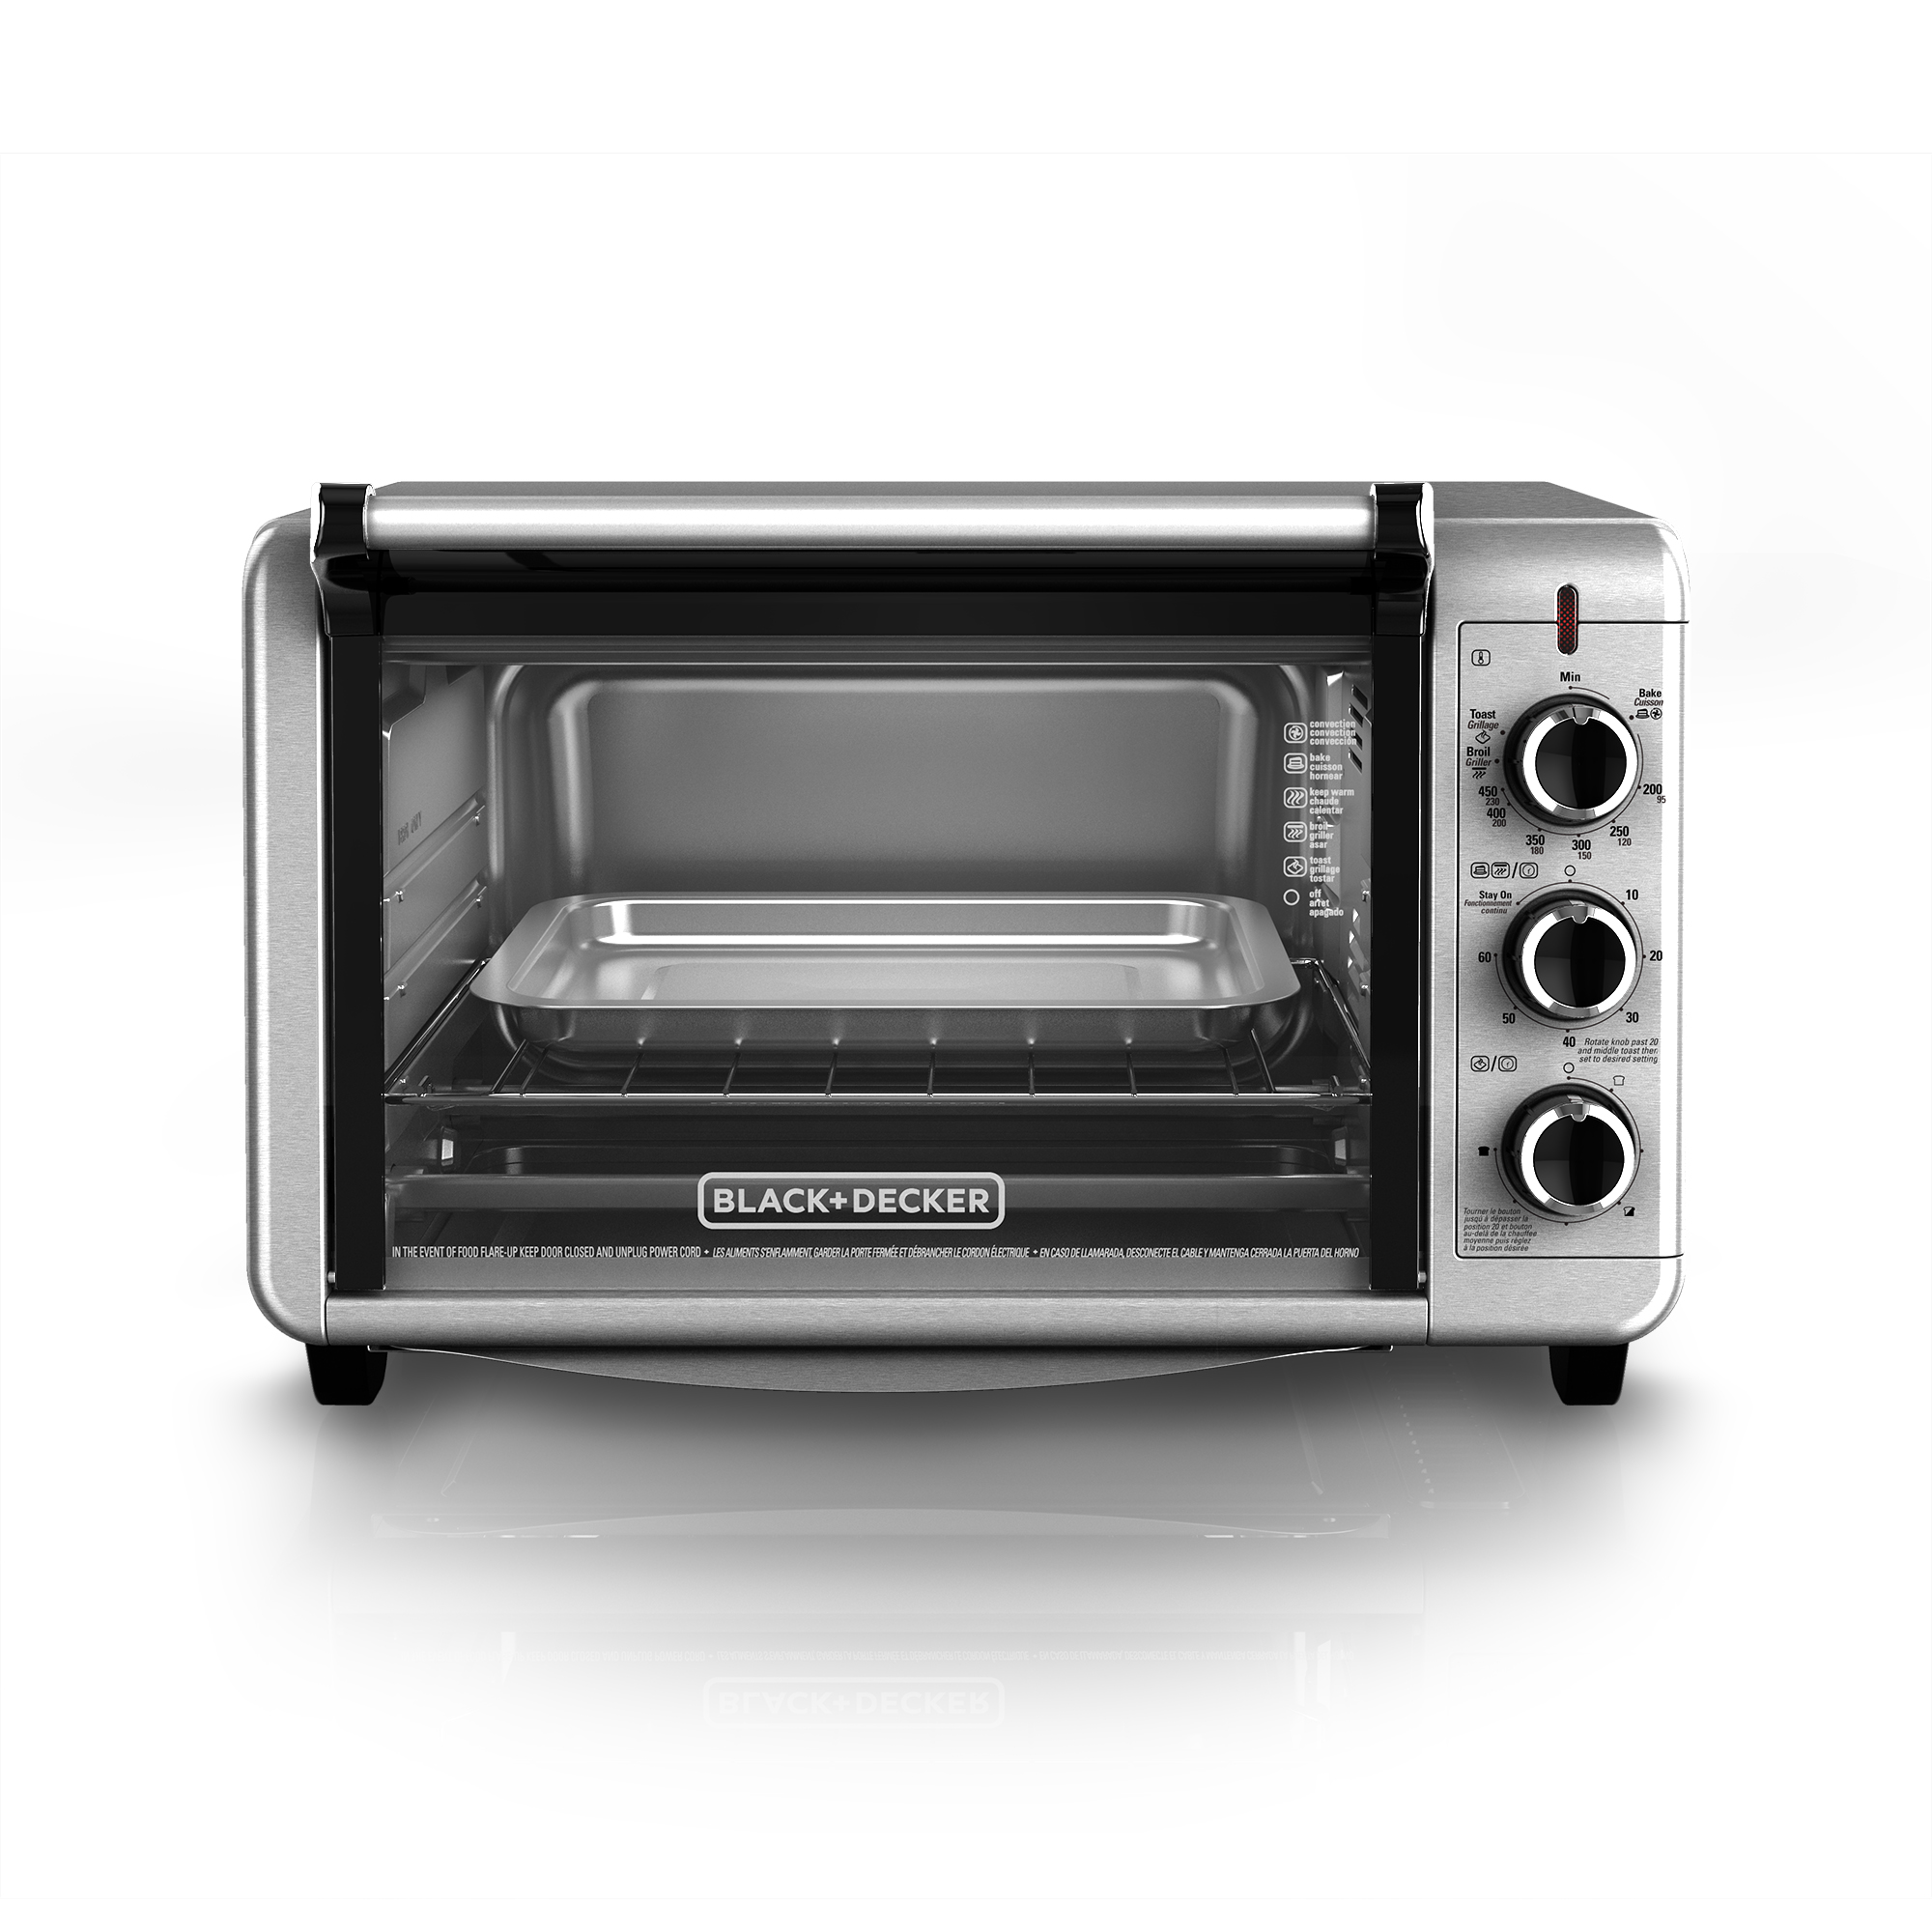 BLACK+DECKER 6-Slice Convection Countertop Toaster Oven, Stainless Steel, TO3210SSD